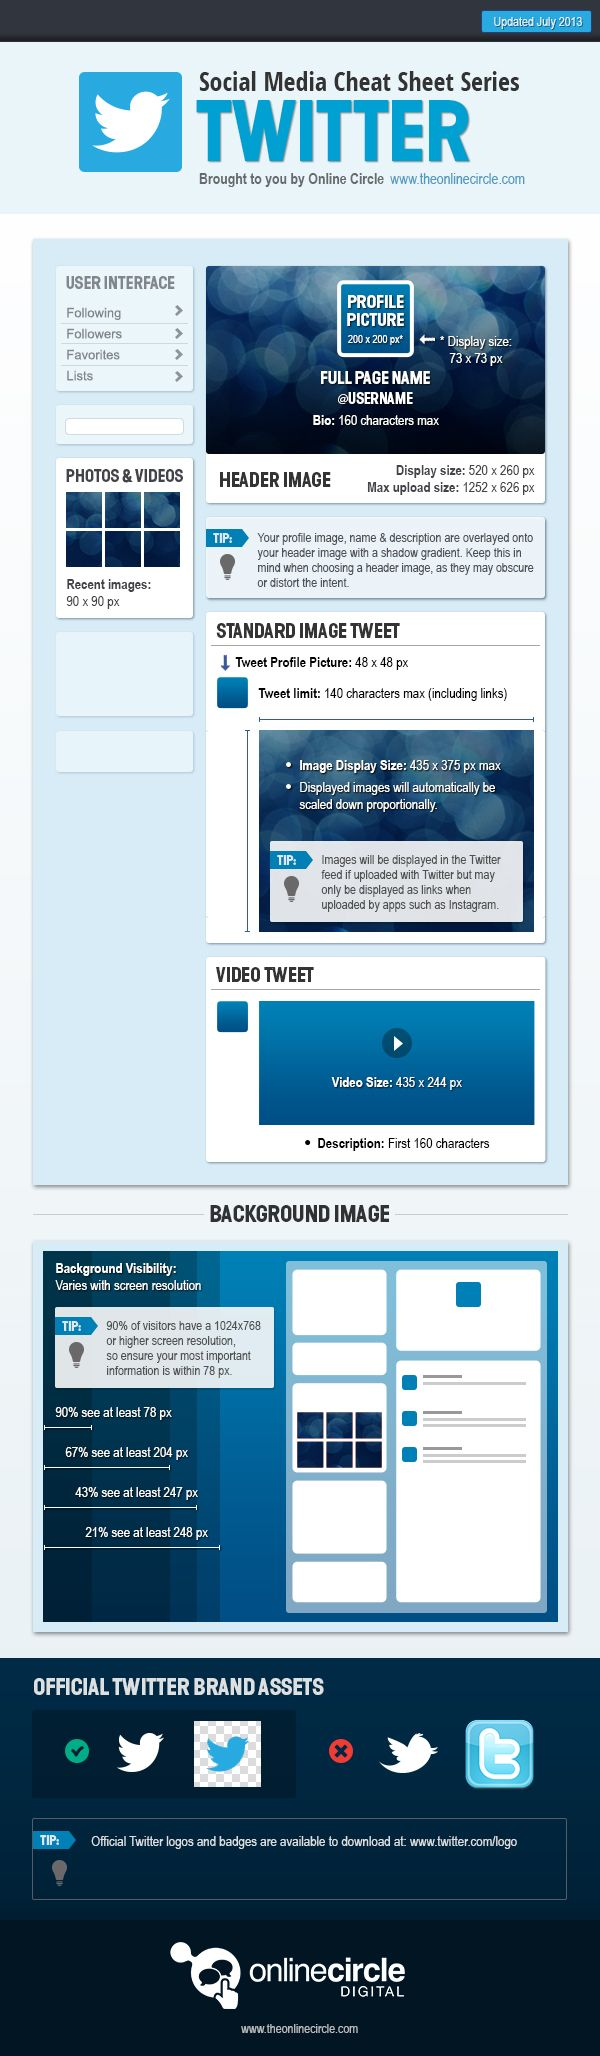 Twitter Cheat Sheet: Profile Image Heights, Widths…